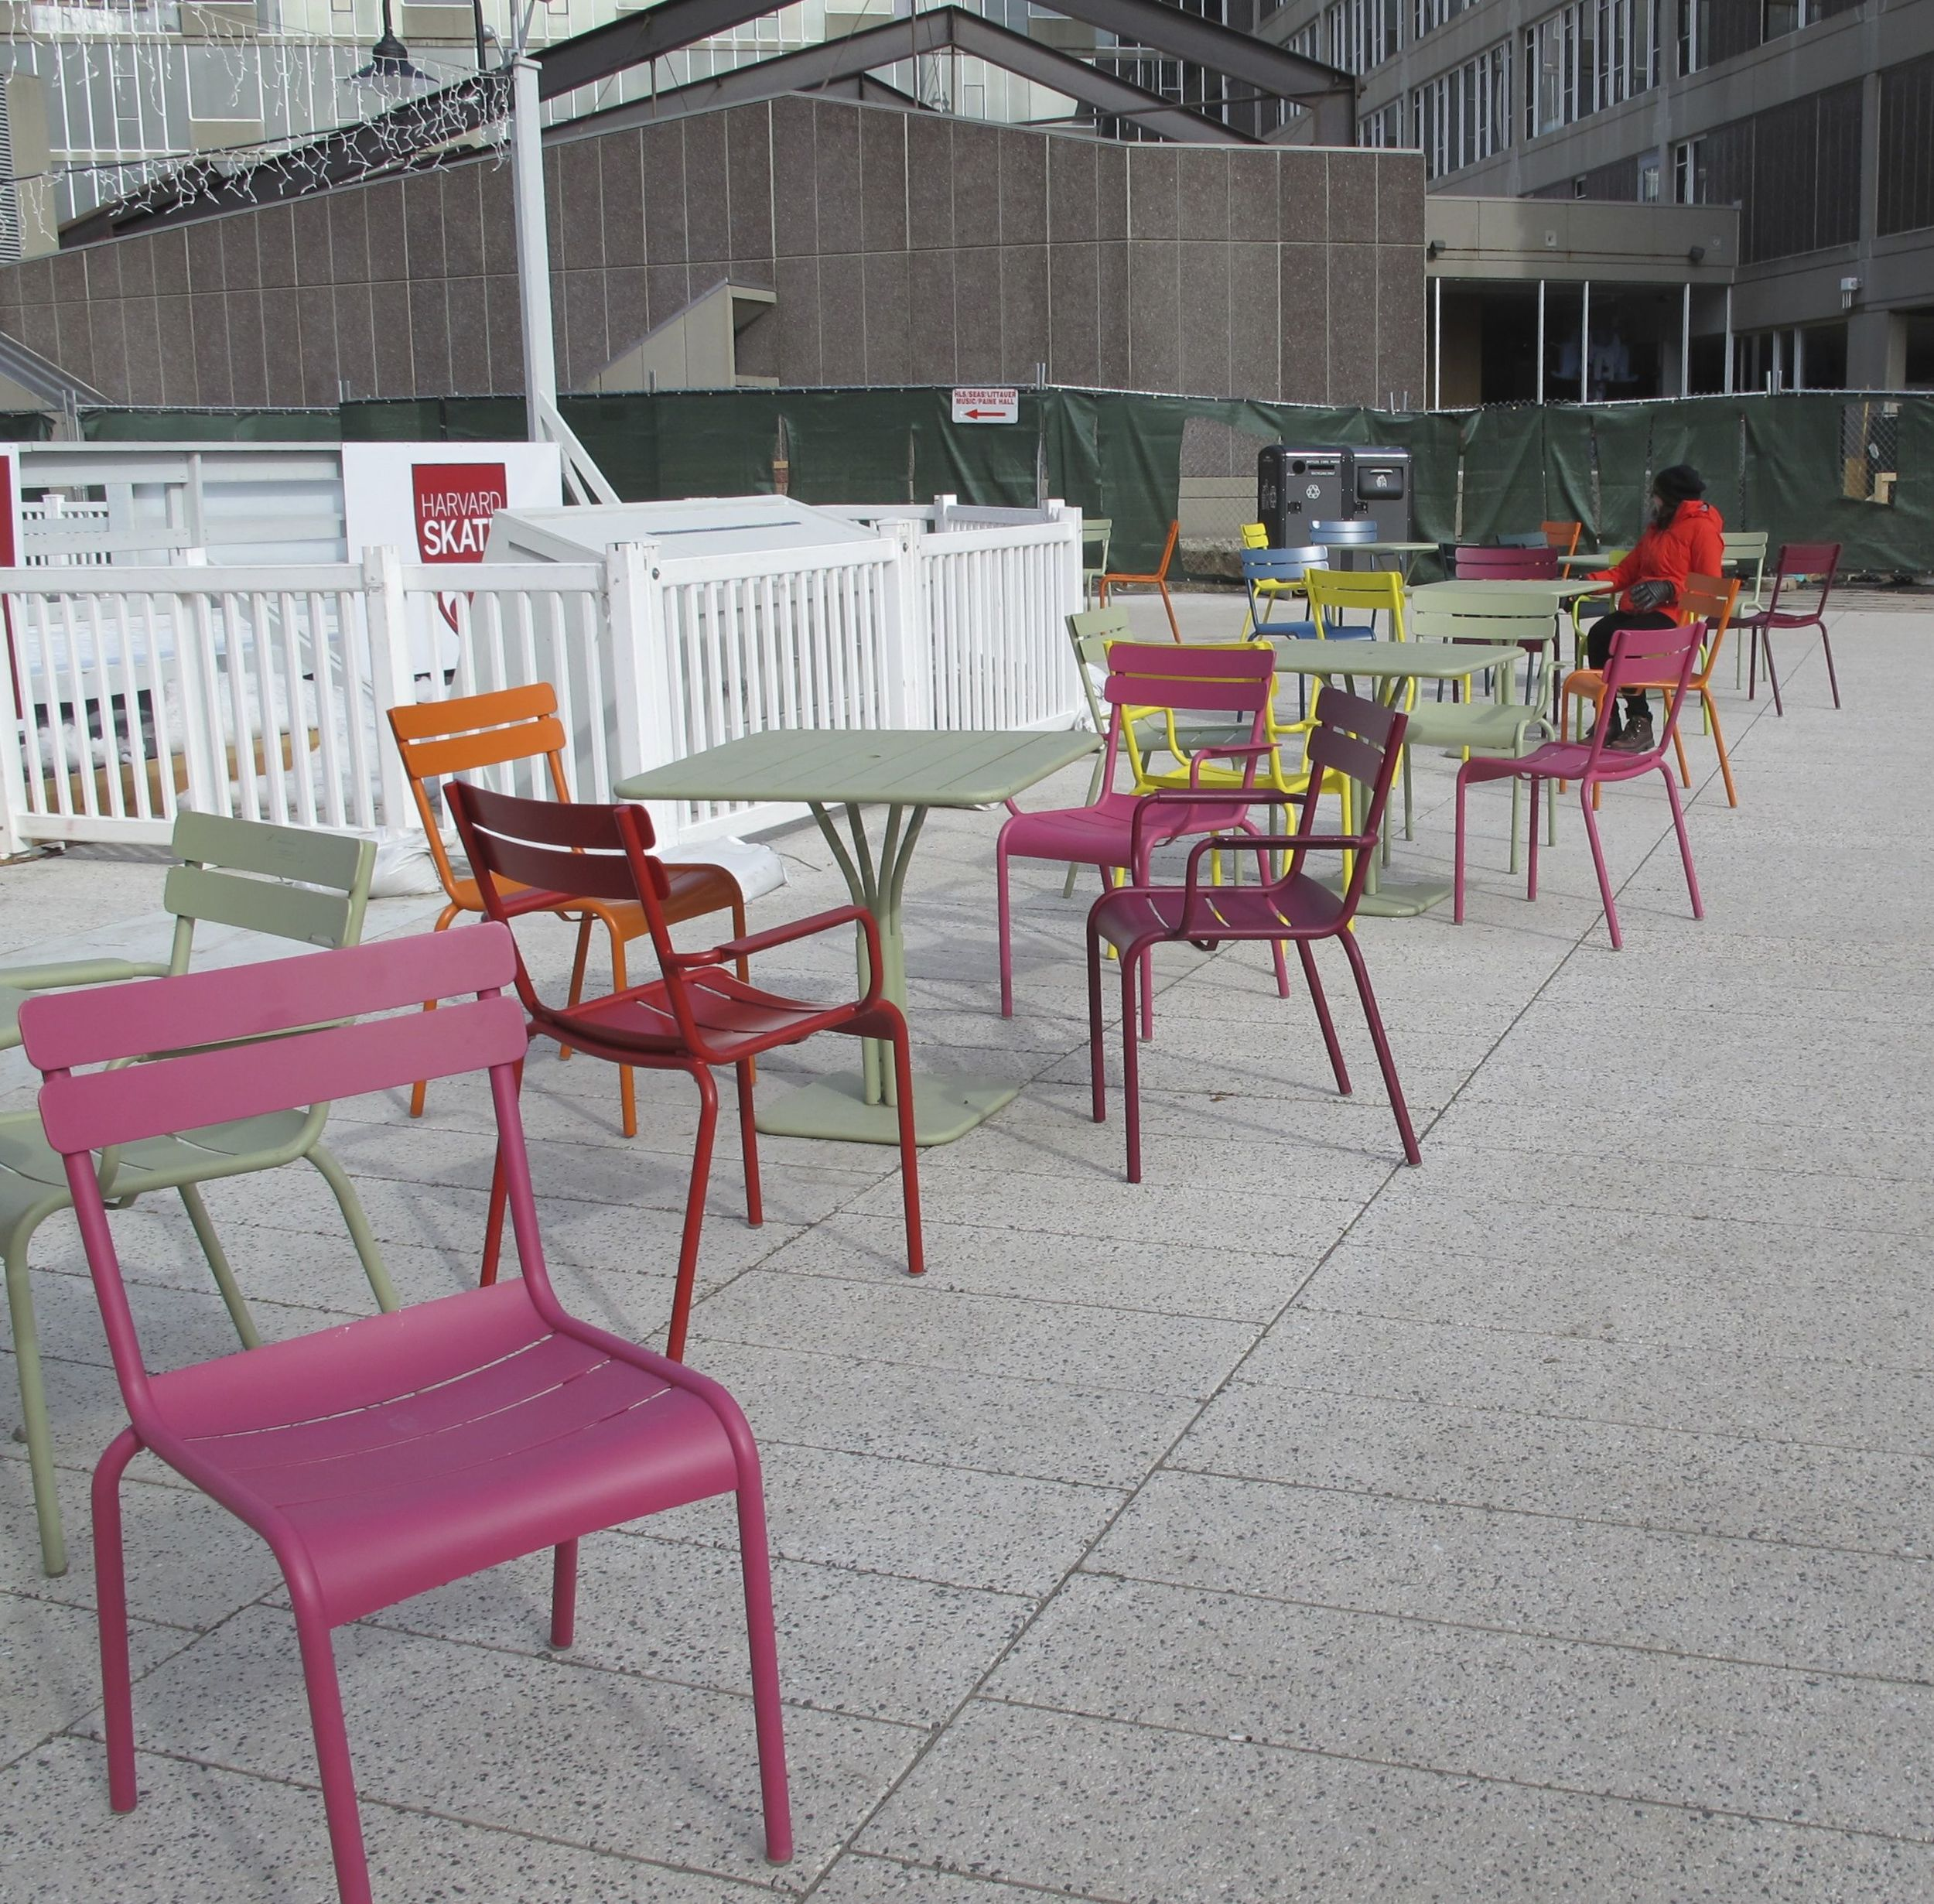 We wandered the Harvard campus quite a bit during our visit. Near the school's outdoor skating rink we saw some tables and chairs... and Pamelia saw a 13.7-billion-year spectrum waiting to happen. So we began moving everything around....